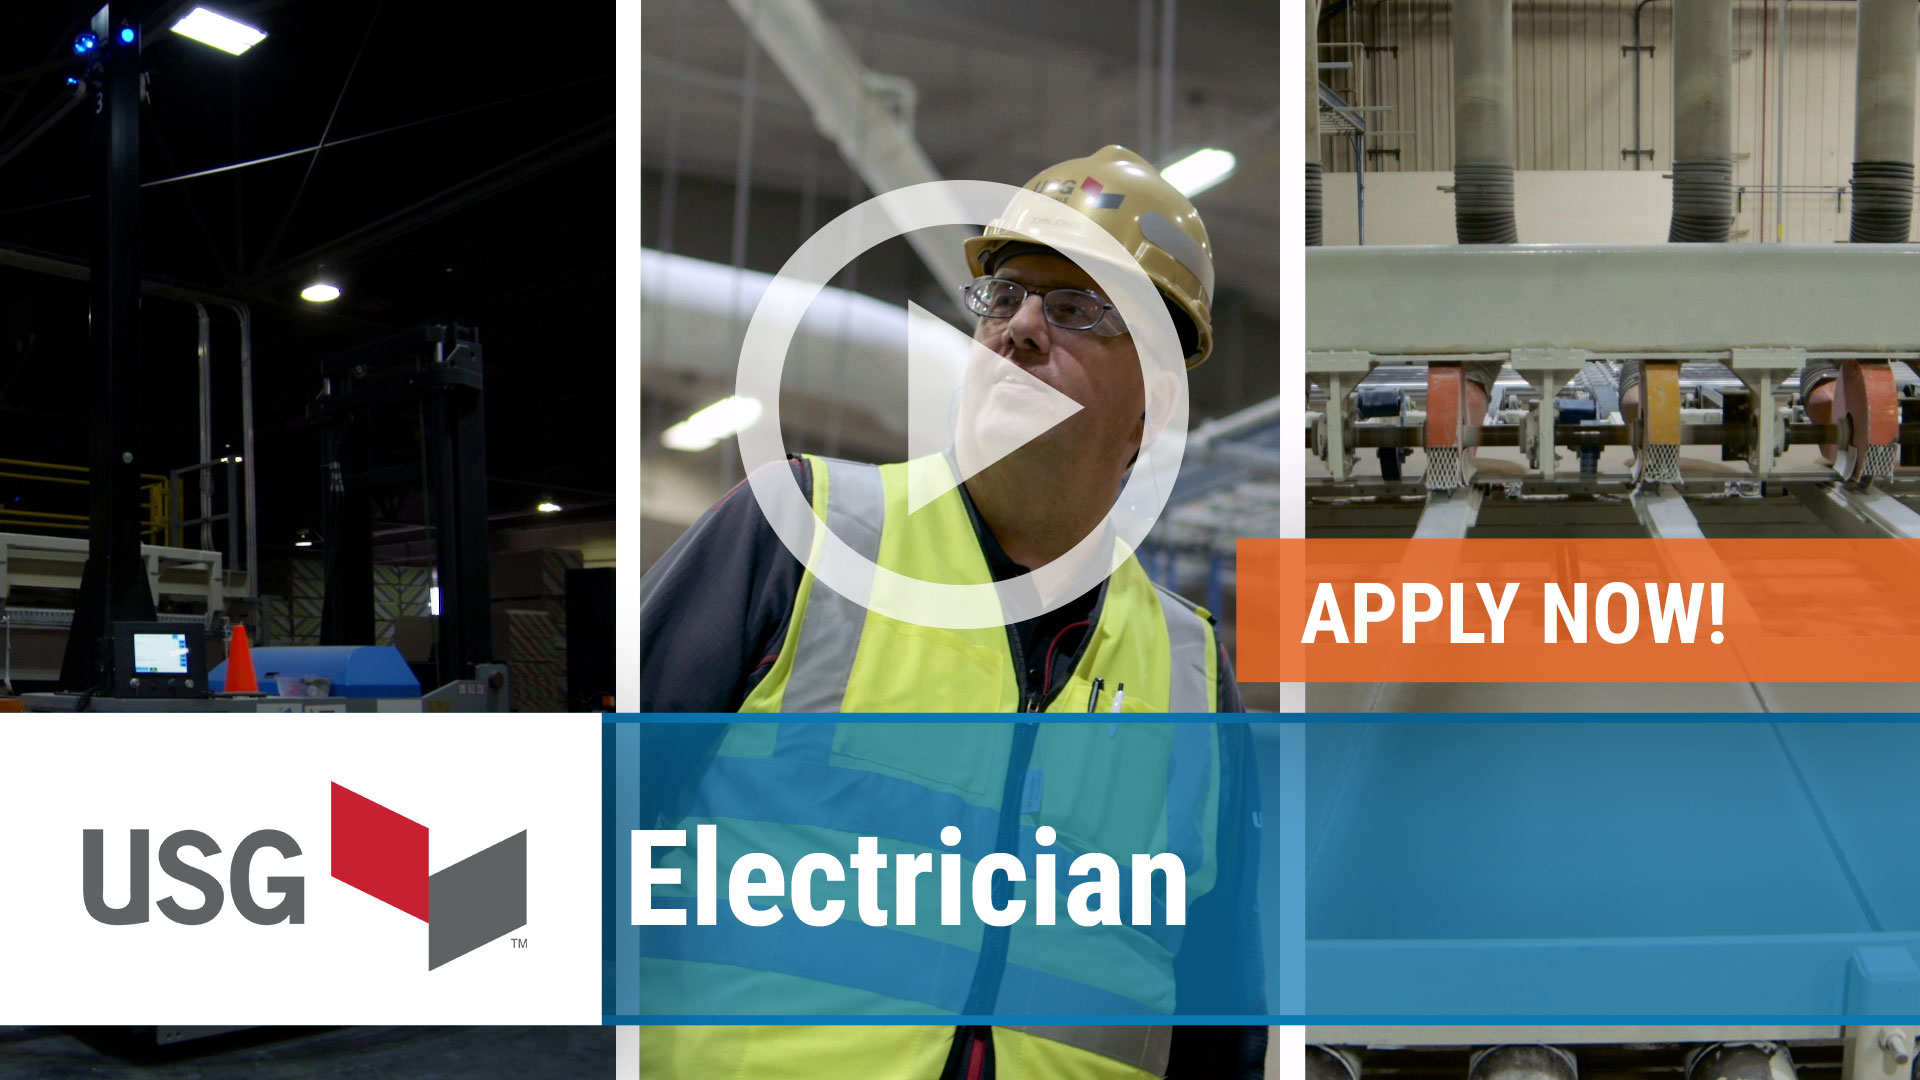 Watch our careers video for available job opening Electrician in Sigurd, UT, USA